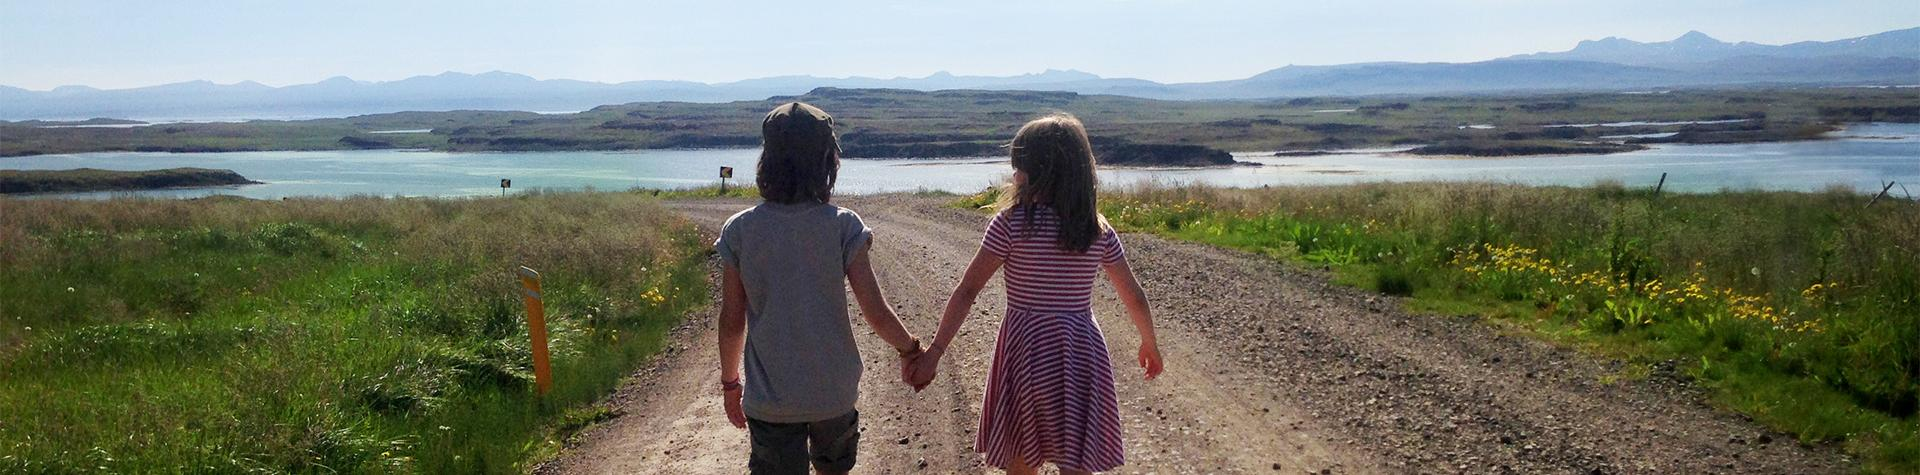 Family holidays in Iceland: Boy and a girl holding hands on a summer family holiday to Myvatn, northern Iceland.